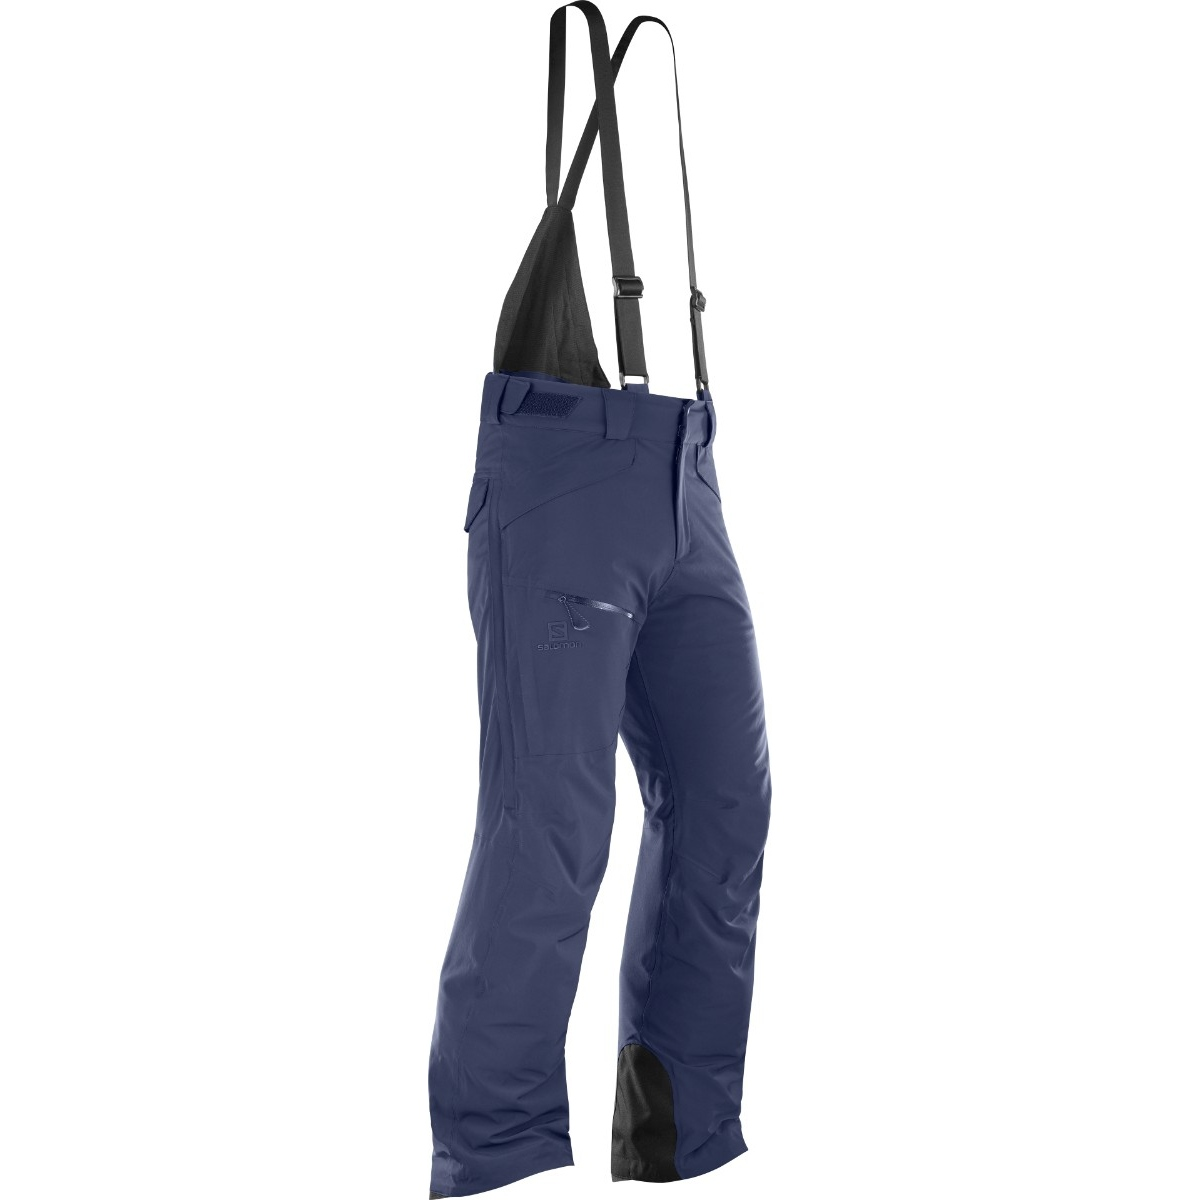 Salomon Pantaloni de ski Salomon CHILL OUT BIB - Bleu